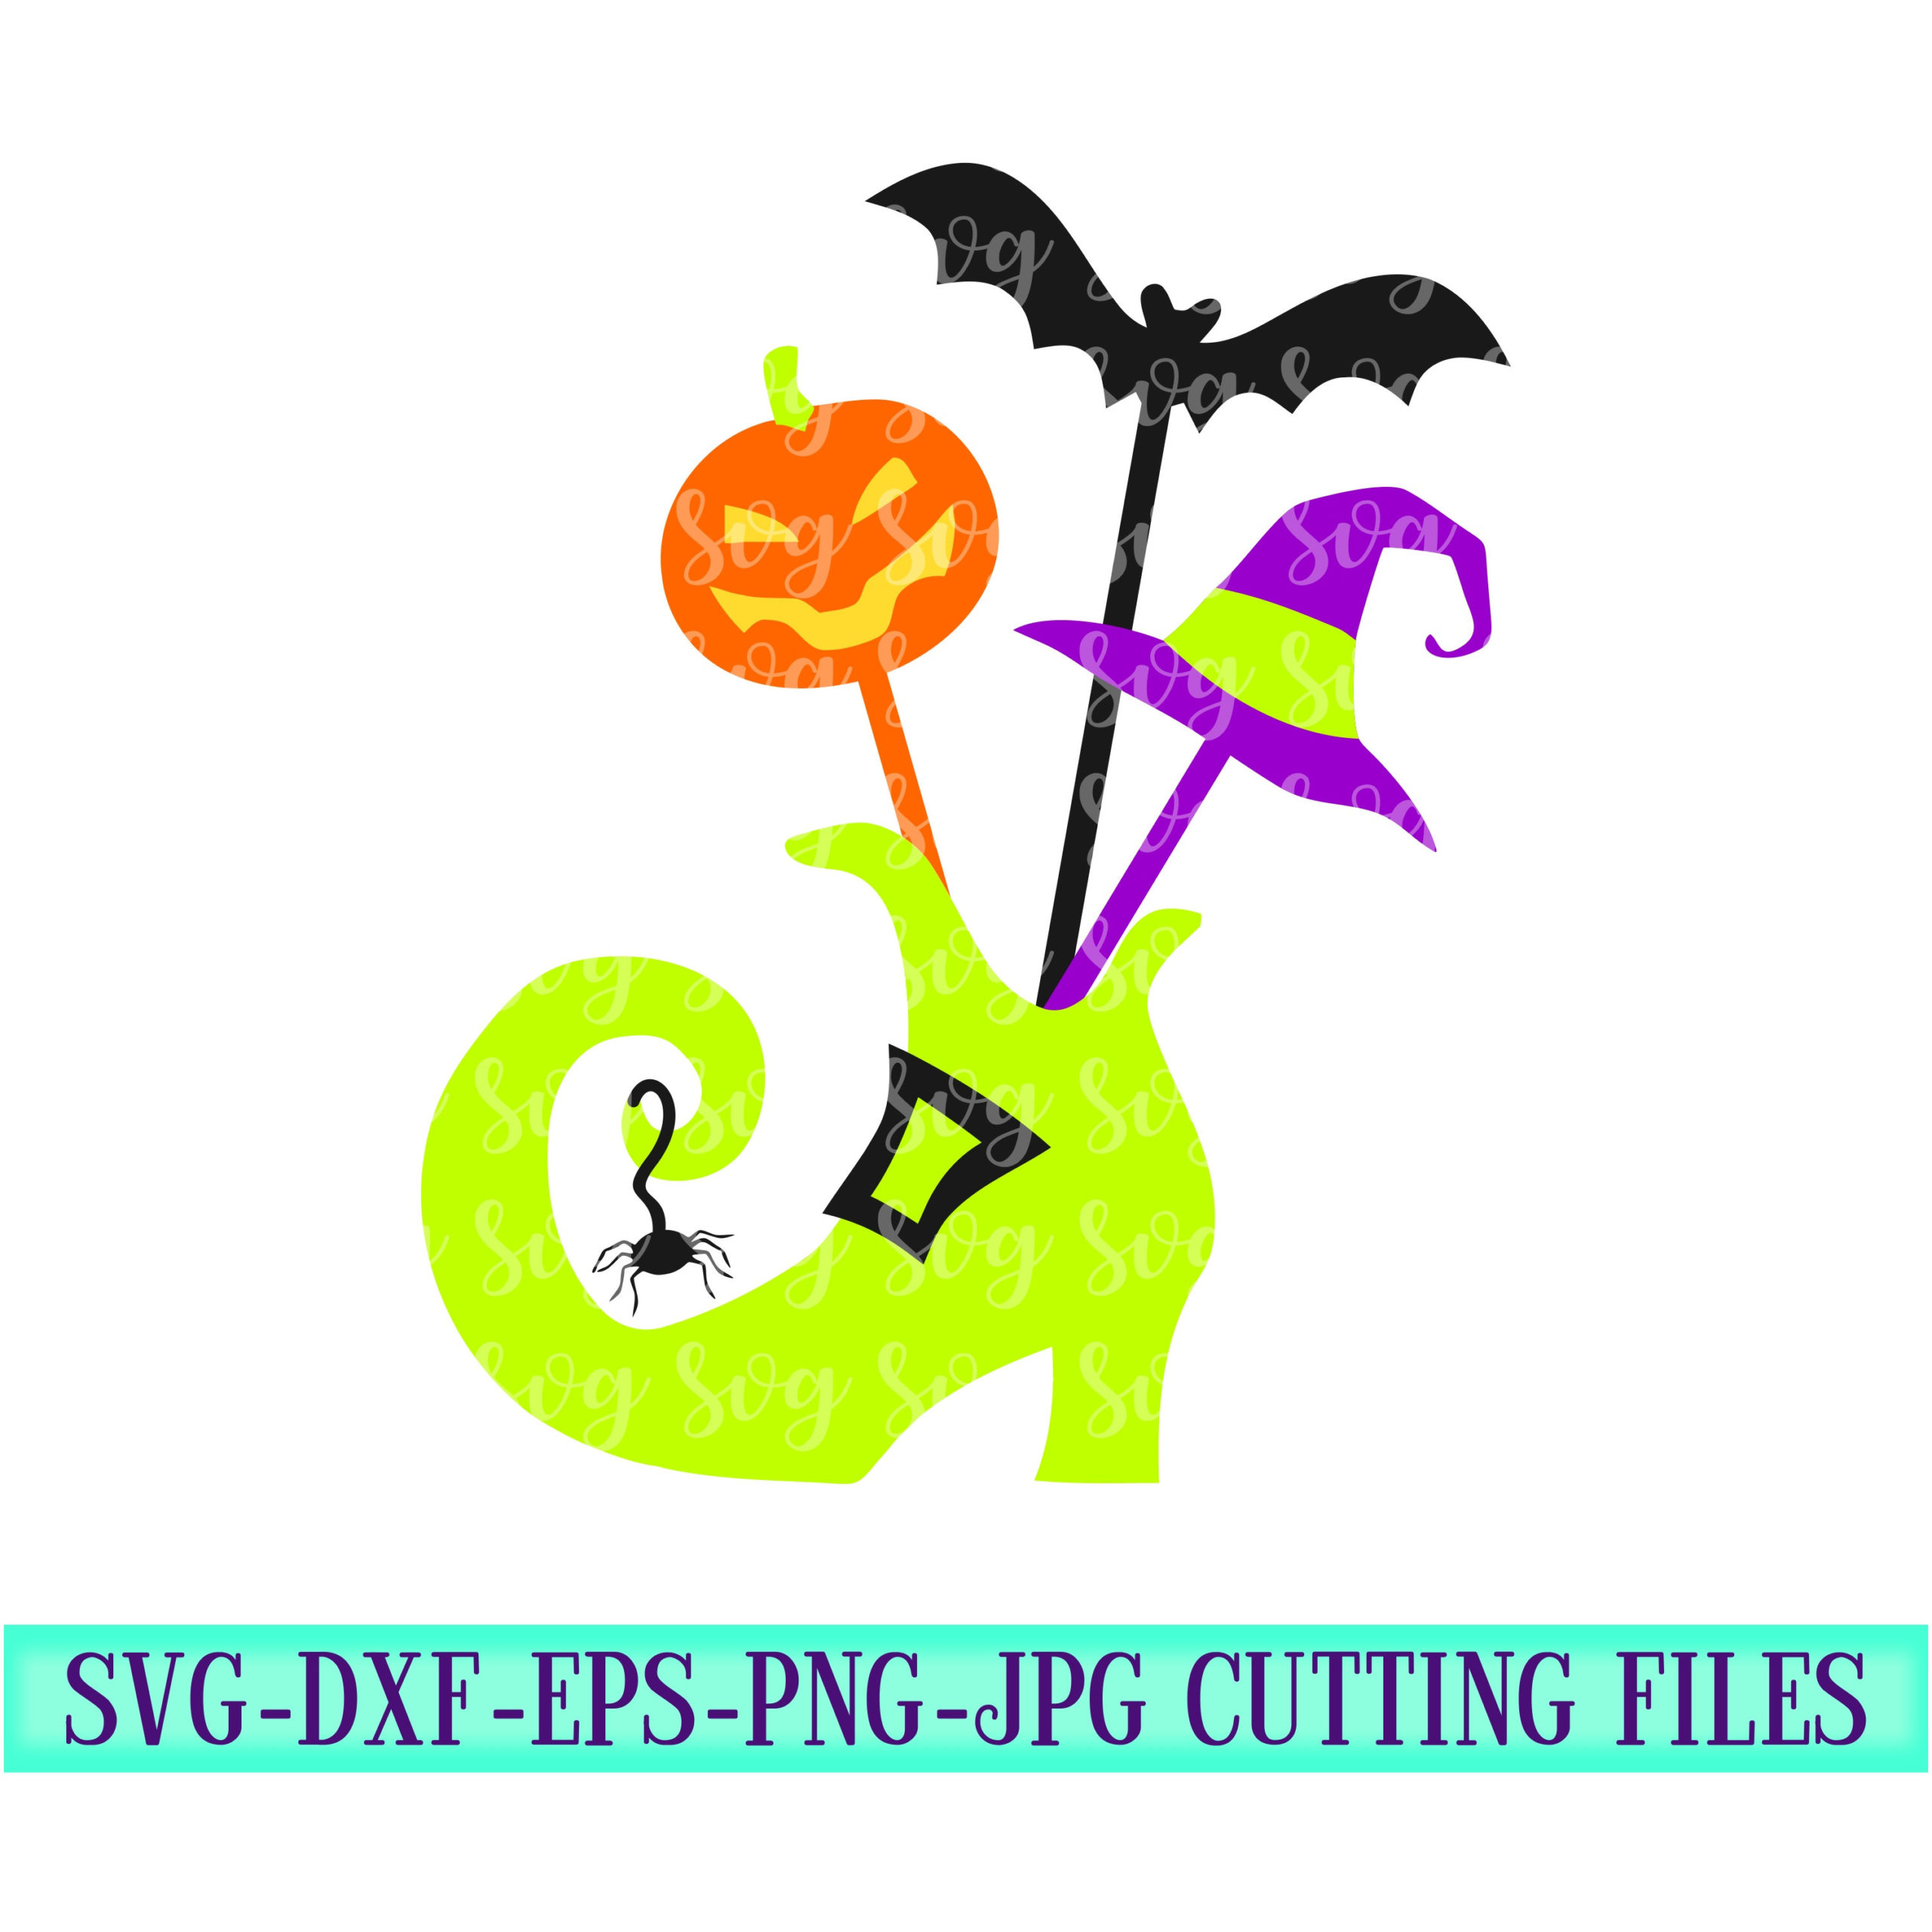 Witch Boot Svg Halloween Candy Svgs Halloween Svg Halloween Monogram Svgs Halloween Cut Designs Cricut Svg Svg For Mobile Mobile Svg Svg For Cricut